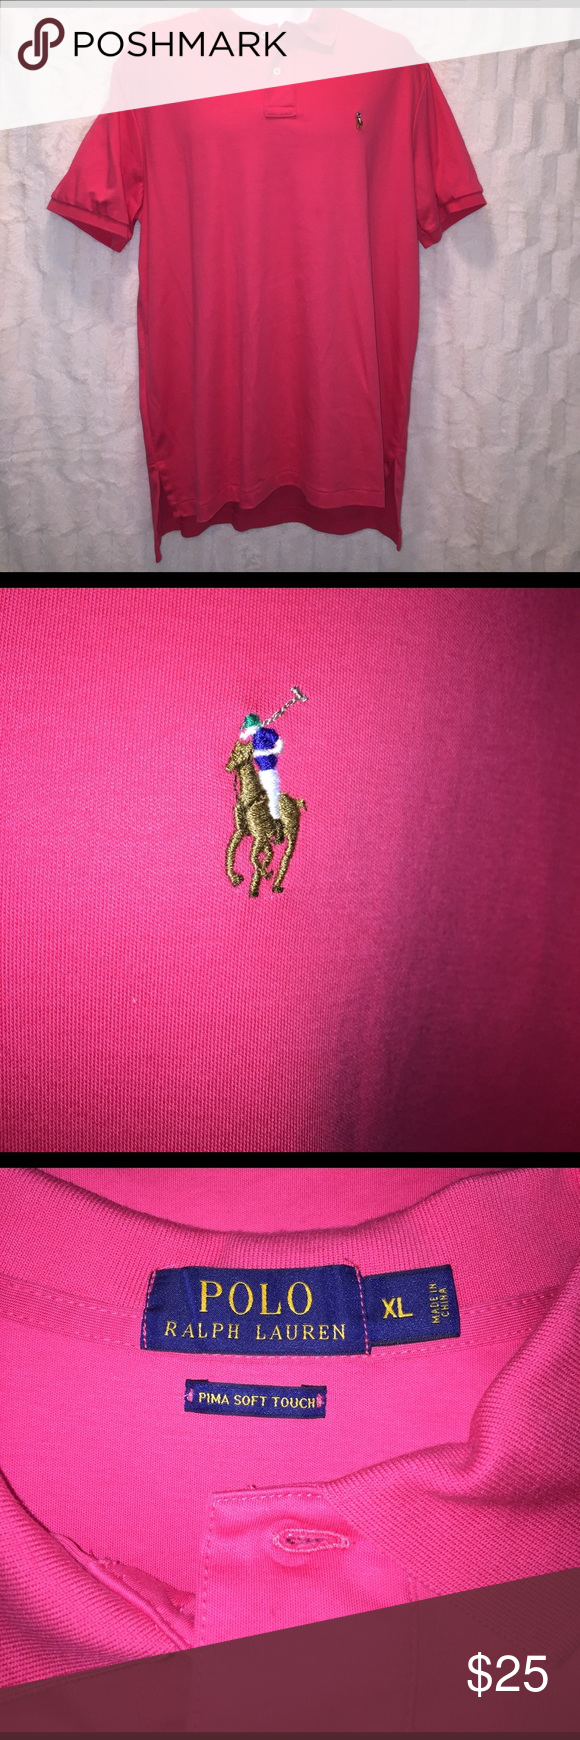 Polo Ralph Lauren Pink Pima shirt Like new. It is a hot pink color, which is great for work or a night out with friends. This shirt goes with everything and can be dressed up or down. It is a size X-Large. Ralph Lauren Shirts Polos